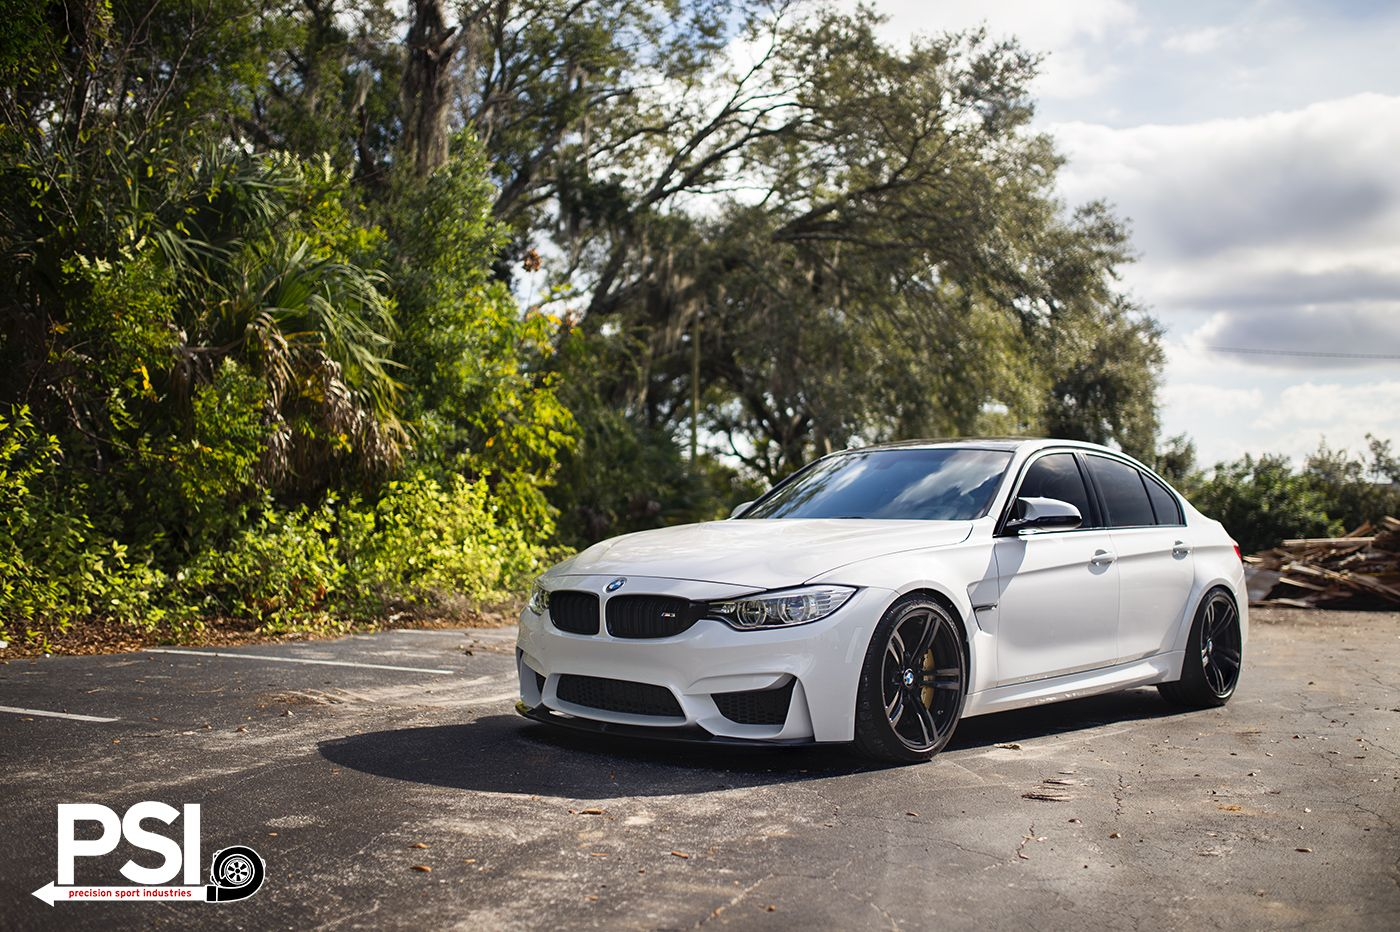 Alpine White Bmw F80 M3 With Vorsteiner Wheels And Aero By Baan Velgen - White paper matt s mw f80 m3